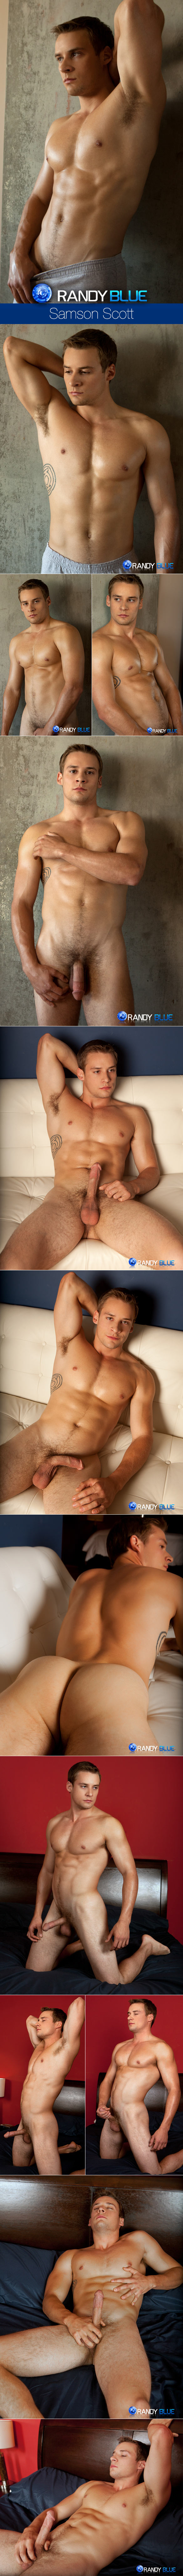 Randy Blue: Samson Scott rubs one out